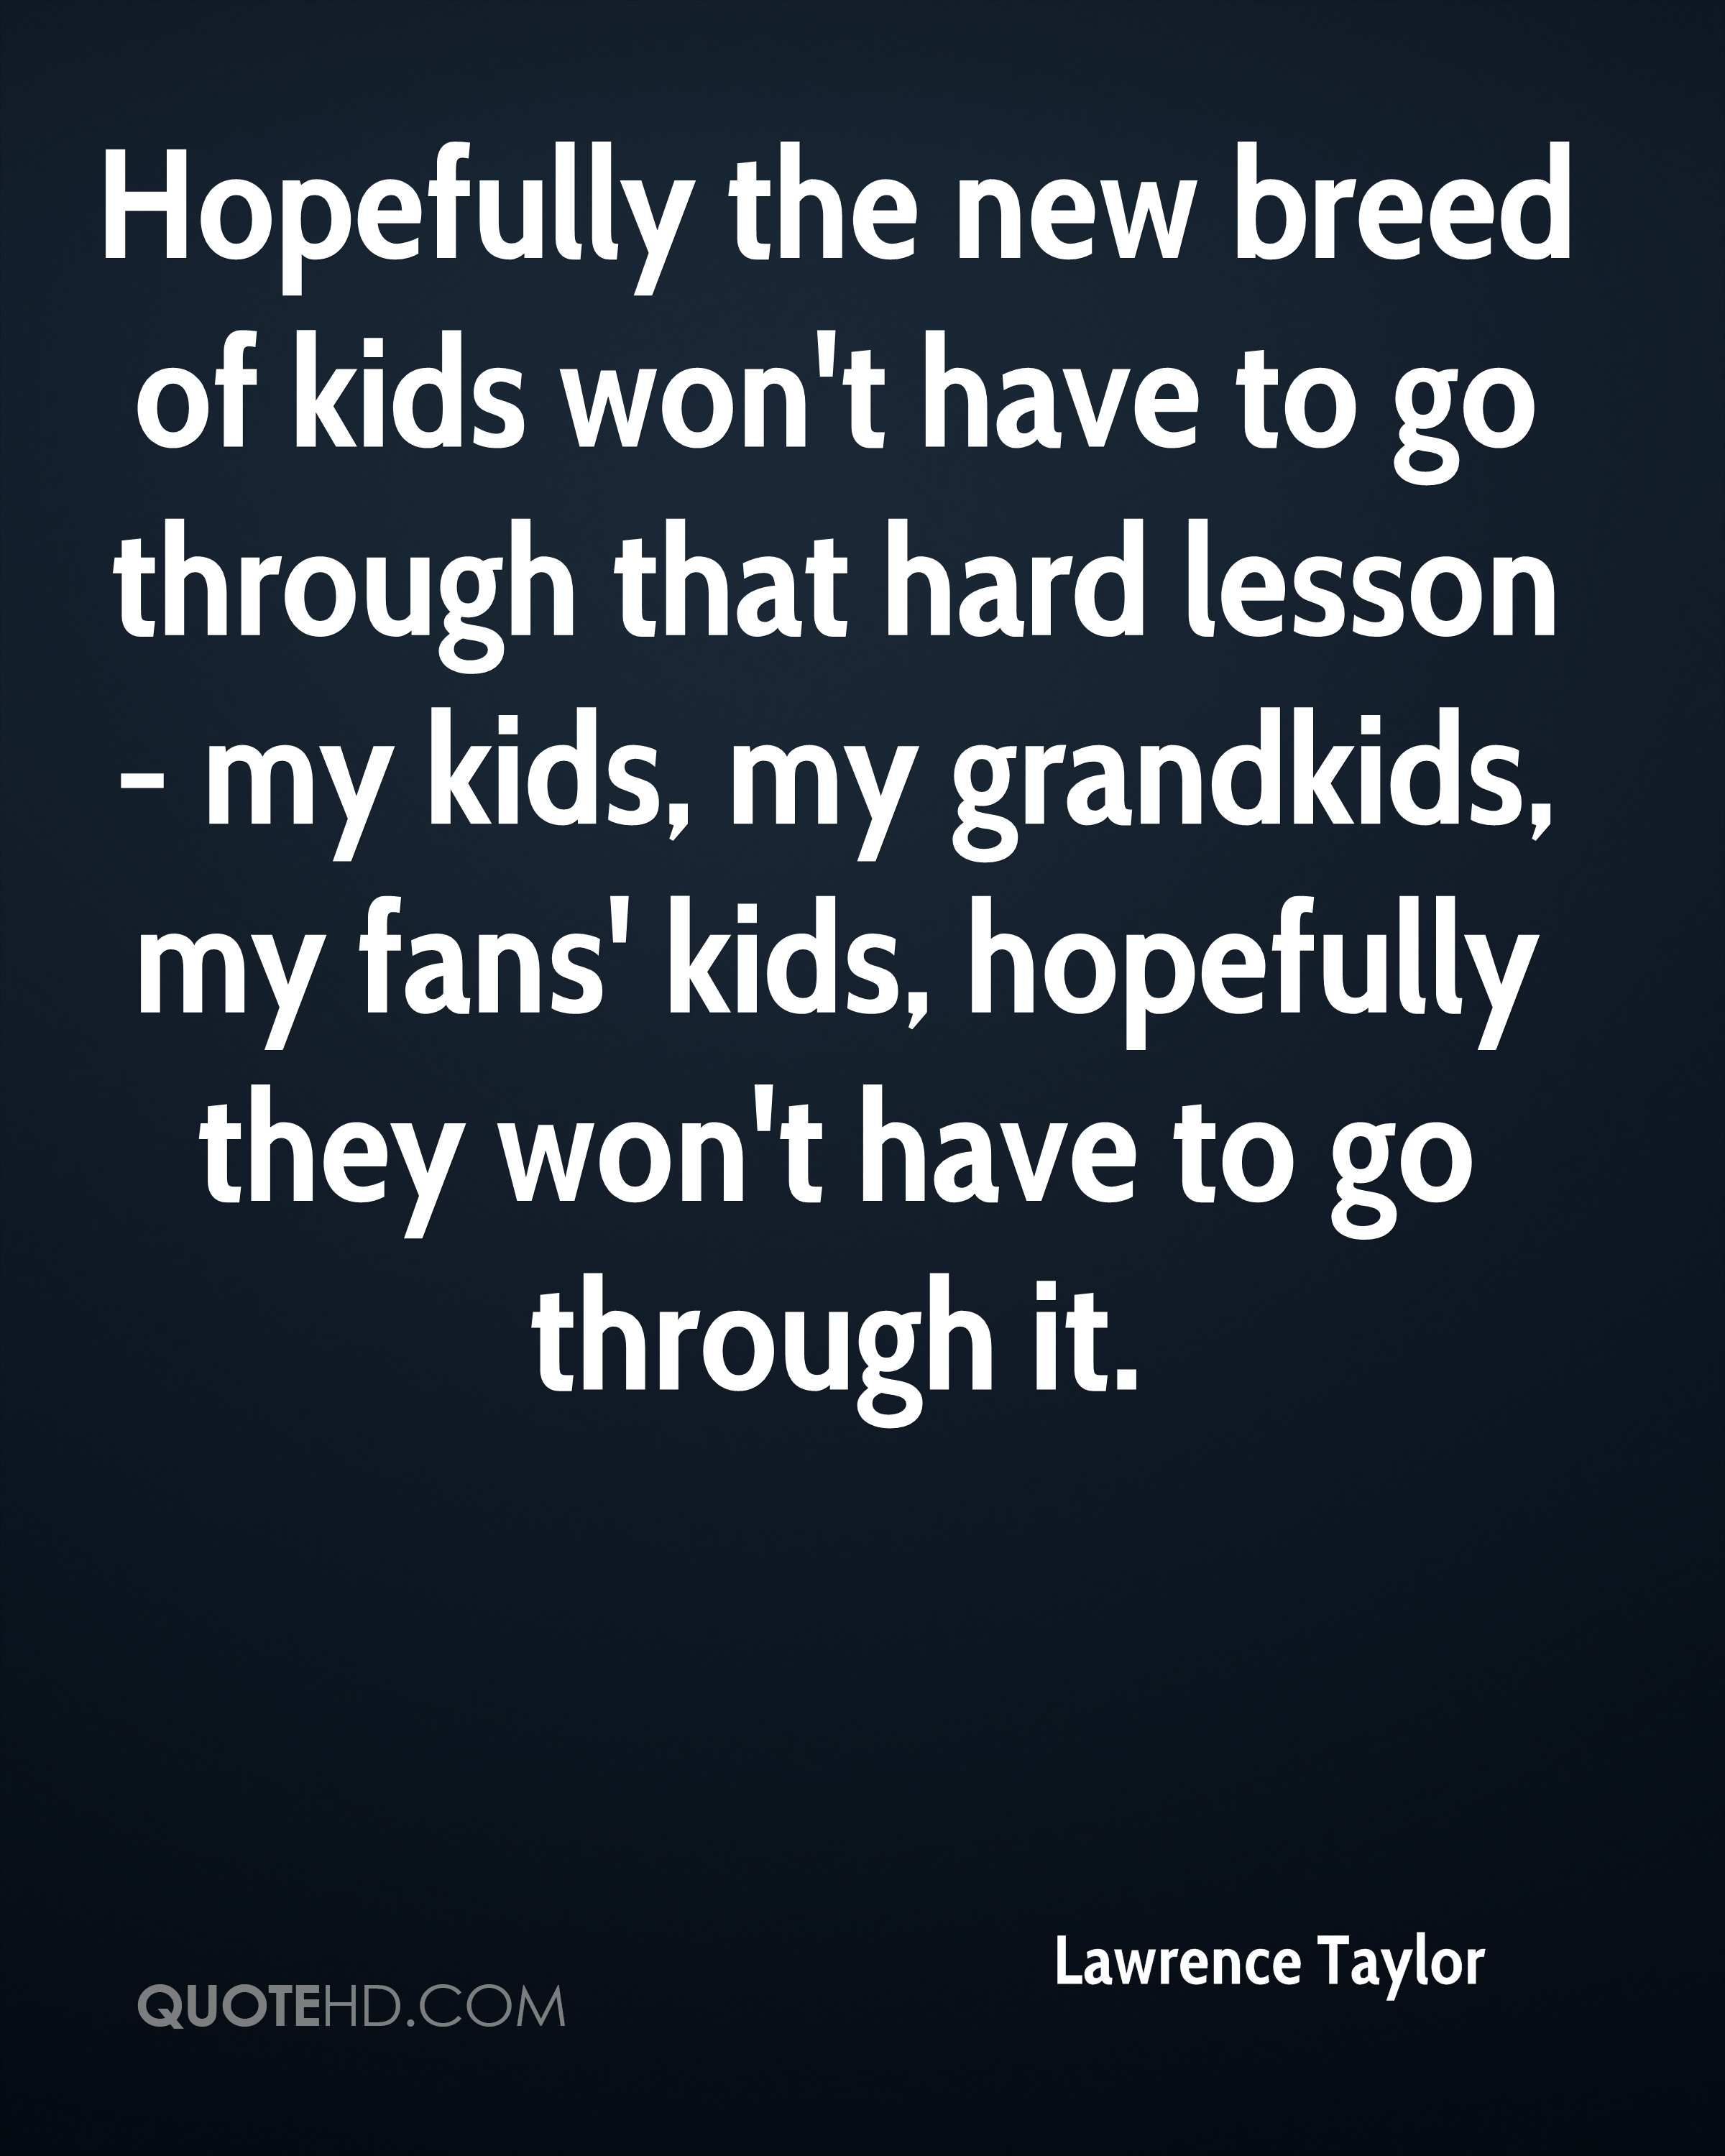 Hopefully the new breed of kids won't have to go through that hard lesson - my kids, my grandkids, my fans' kids, hopefully they won't have to go through it.